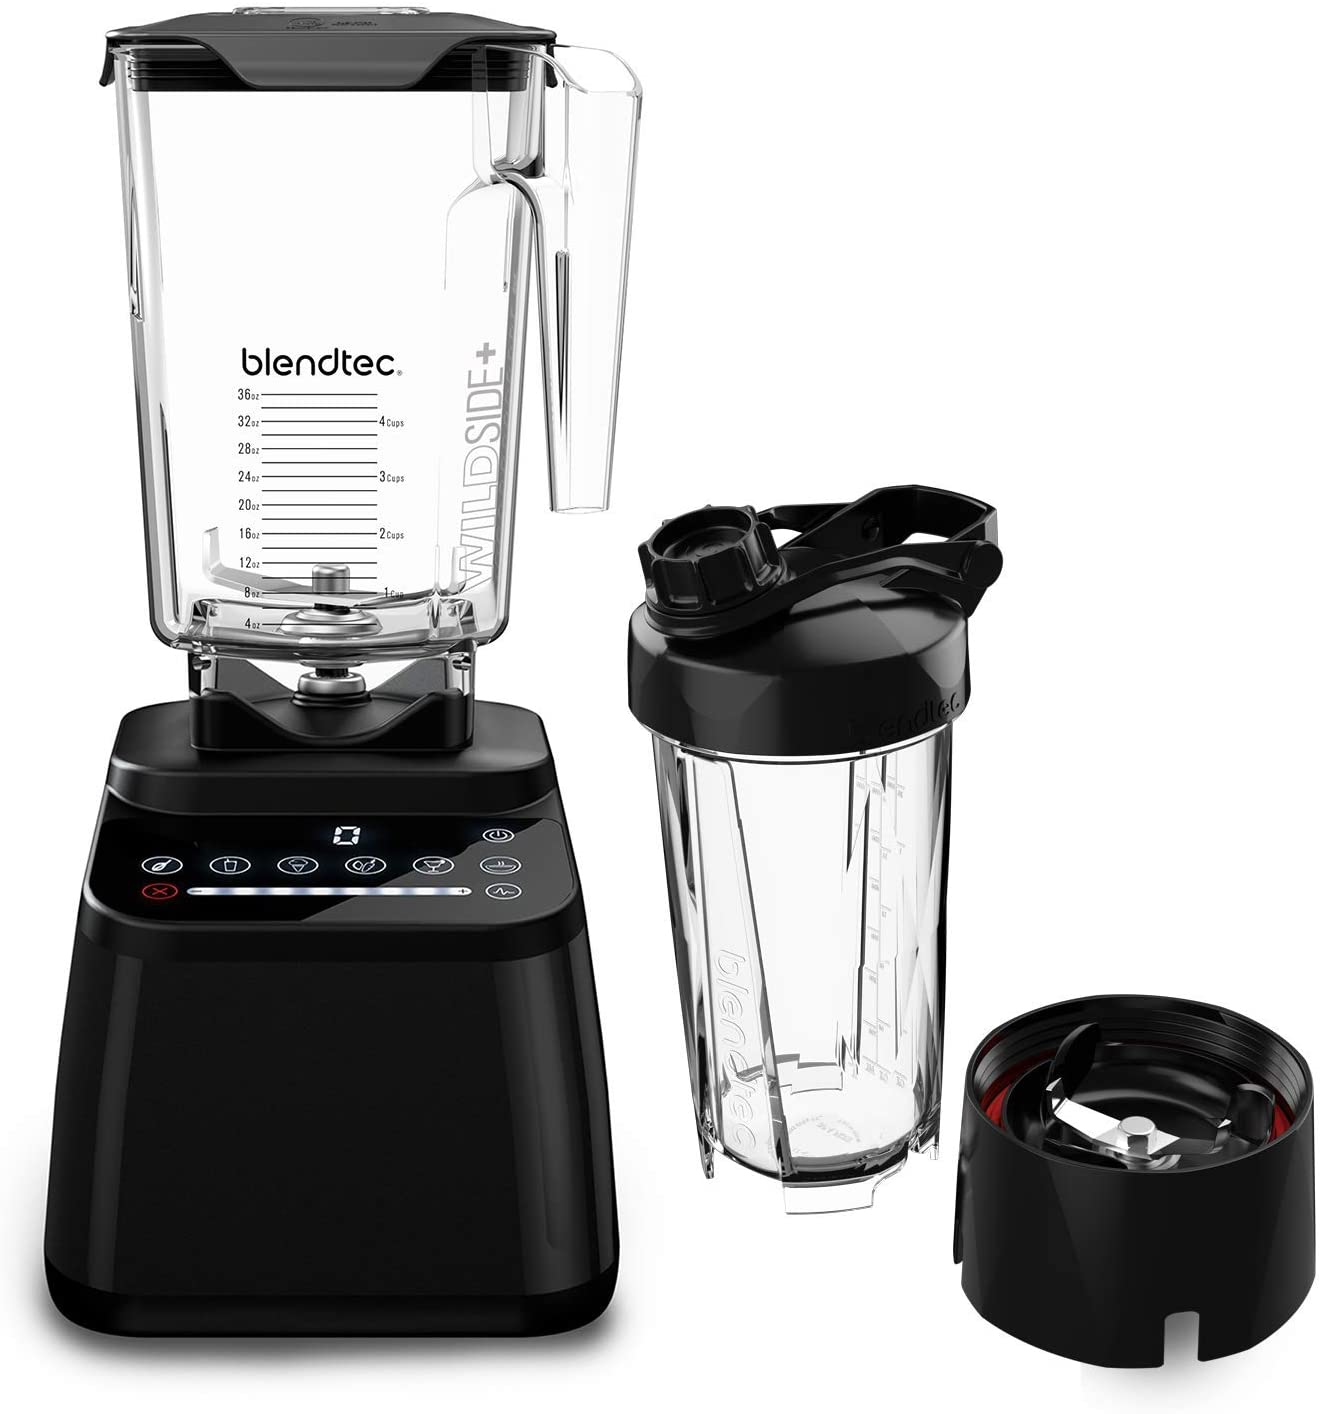 Blendtec Designer Series Blender-WildSide+ Jar (90 oz) GO Travel Bottle (34 oz) BUNDLE Professional-Grade Power-Self-Cleaning-6 Pre-programmed Cycles-8-Speeds-Sleek and Slim-Black